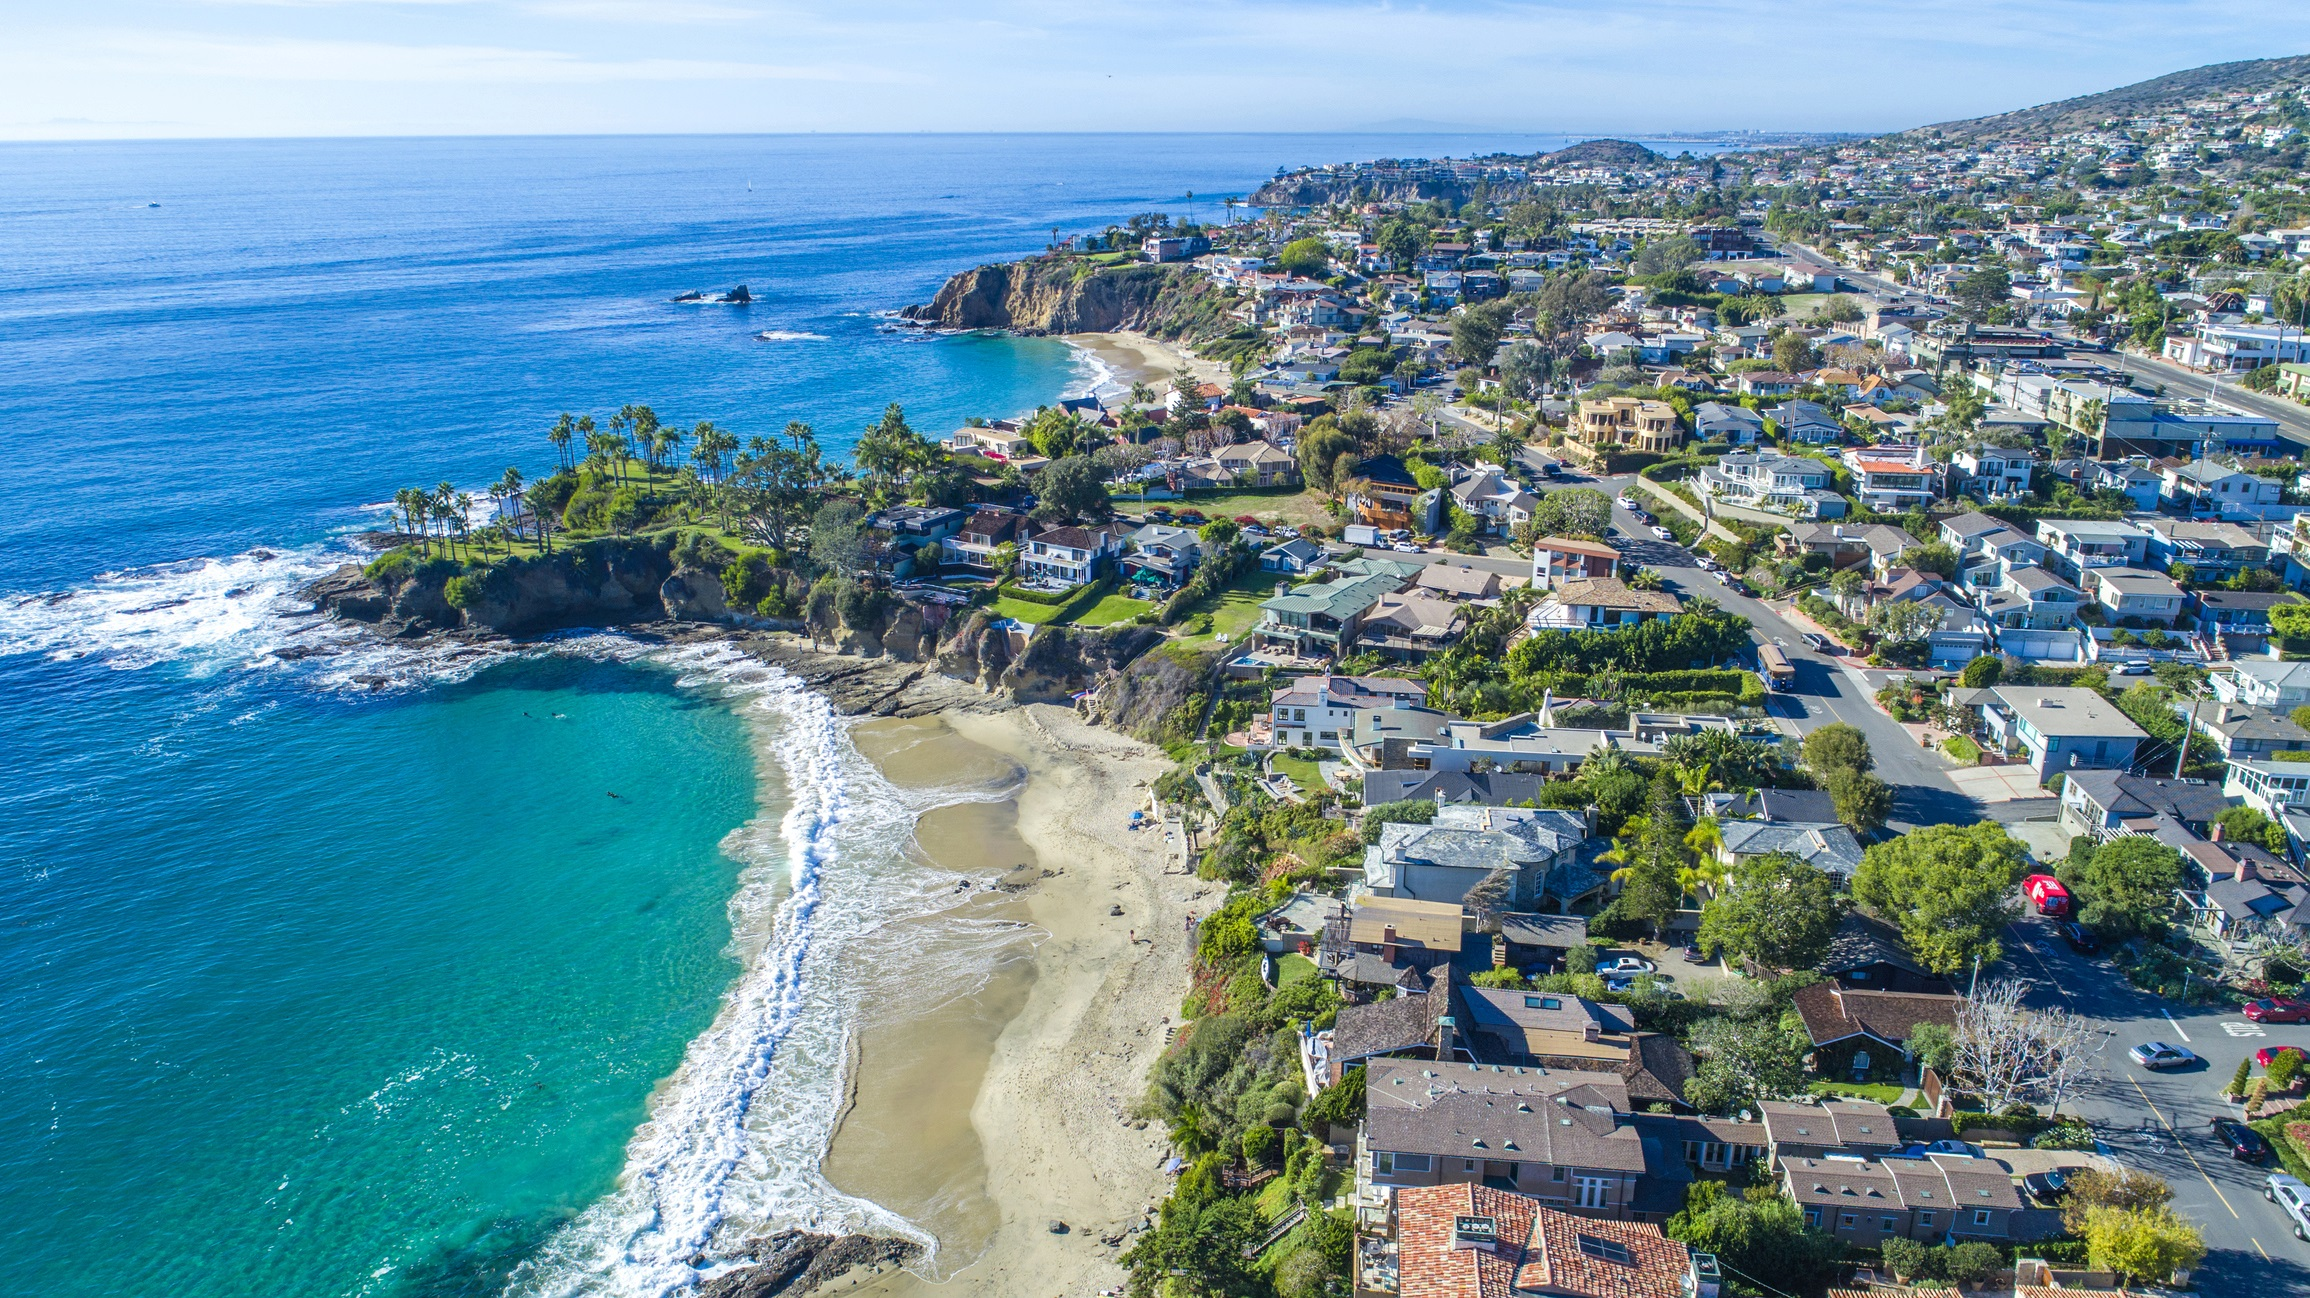 Laguna Beach Is An Affluent Seaside Resort City And Artist Community Located In Southern Orange County California United States Roximately 19 Miles